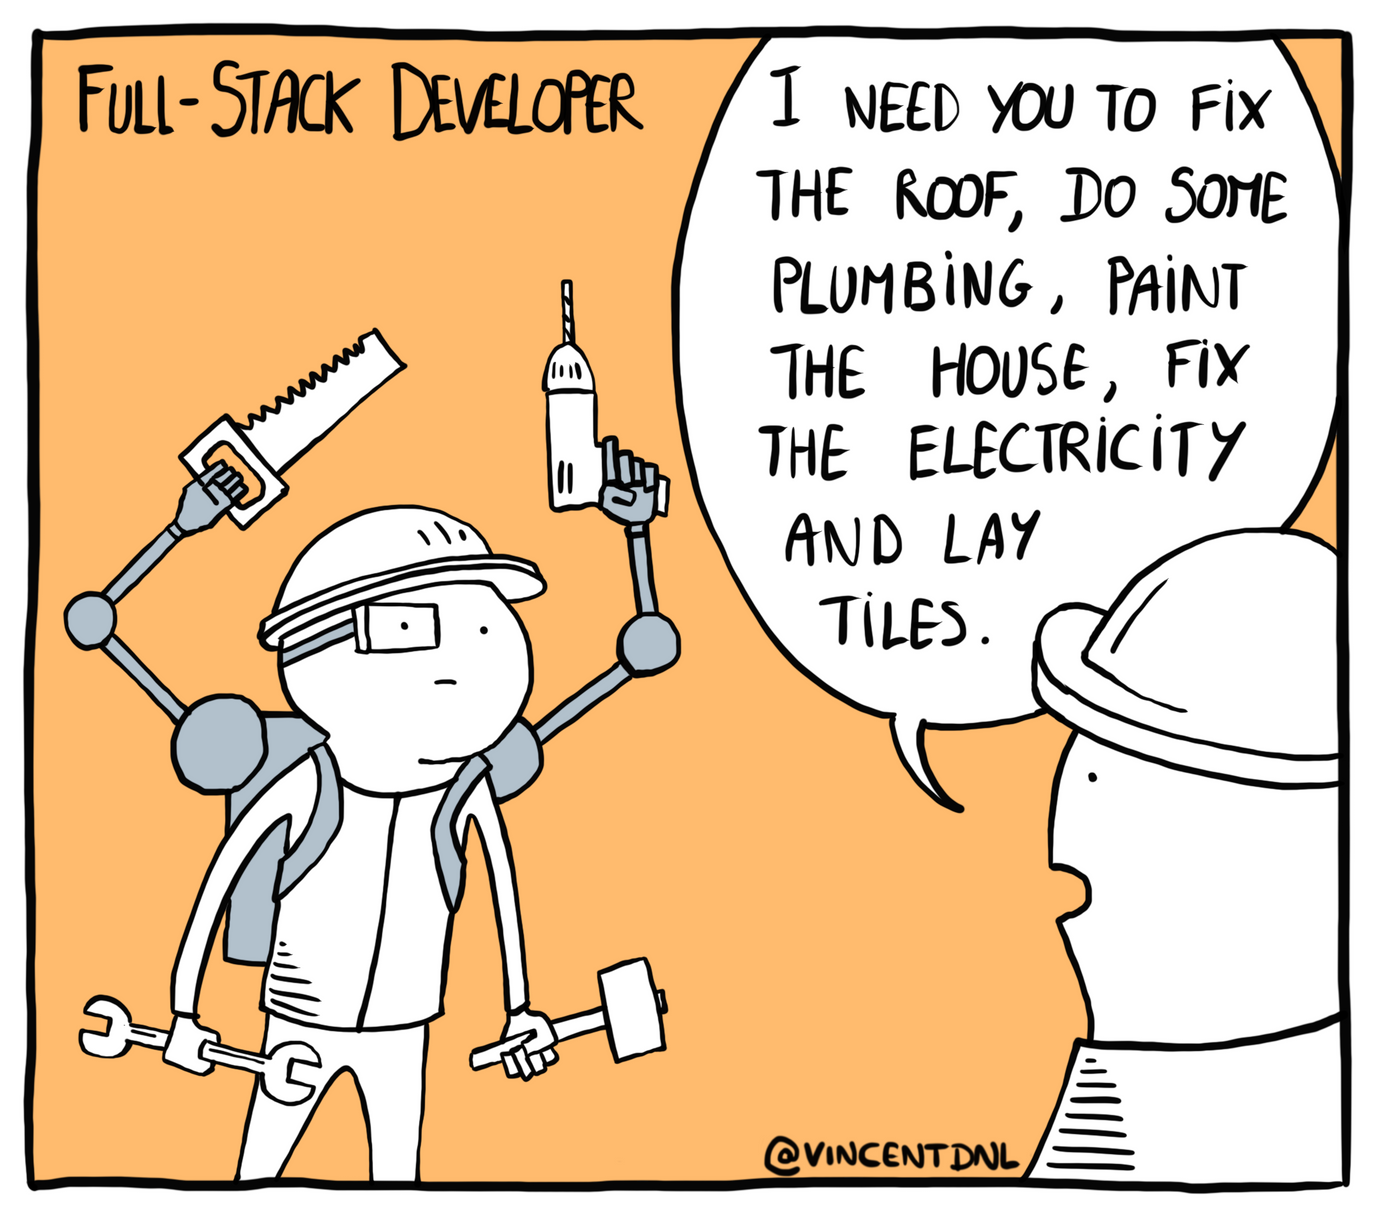 drawing - text: Full-Stack Developer - I need you to fix the roof, do some plumbing, paint the house, fix the electricity and lay tiles.